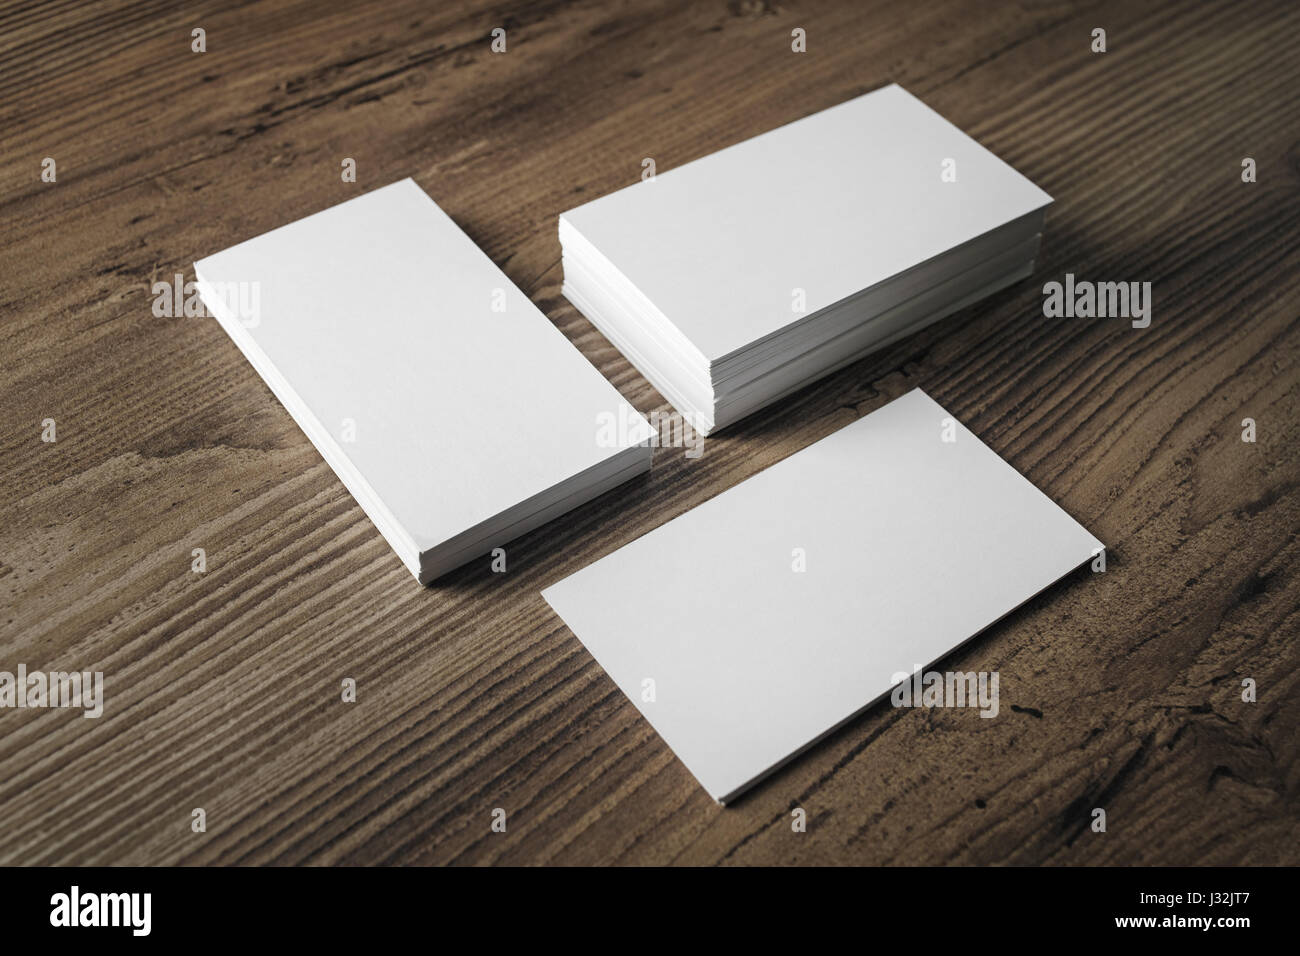 Stacks of blank name cards on wooden table background template for stacks of blank name cards on wooden table background template for branding identity business cards mock up reheart Gallery